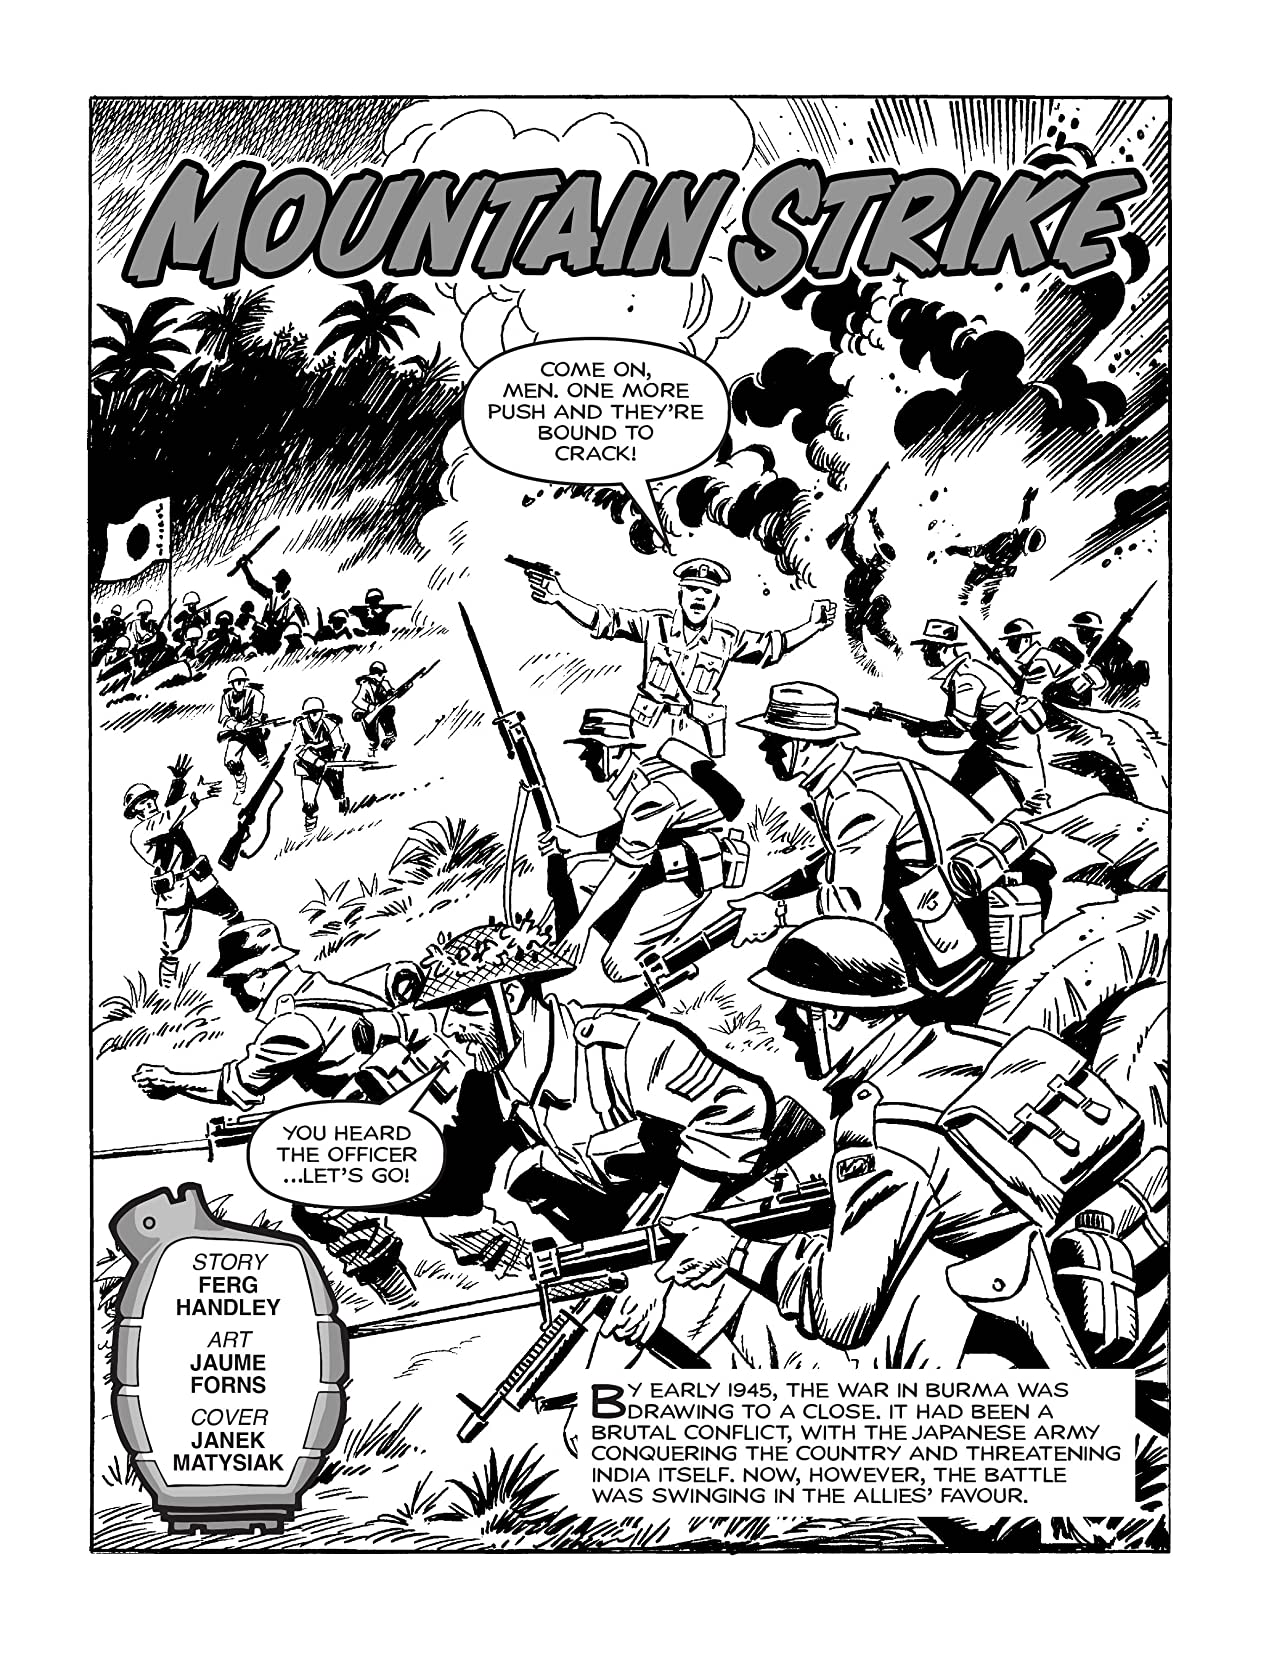 Commando #4985: Mountain Strike